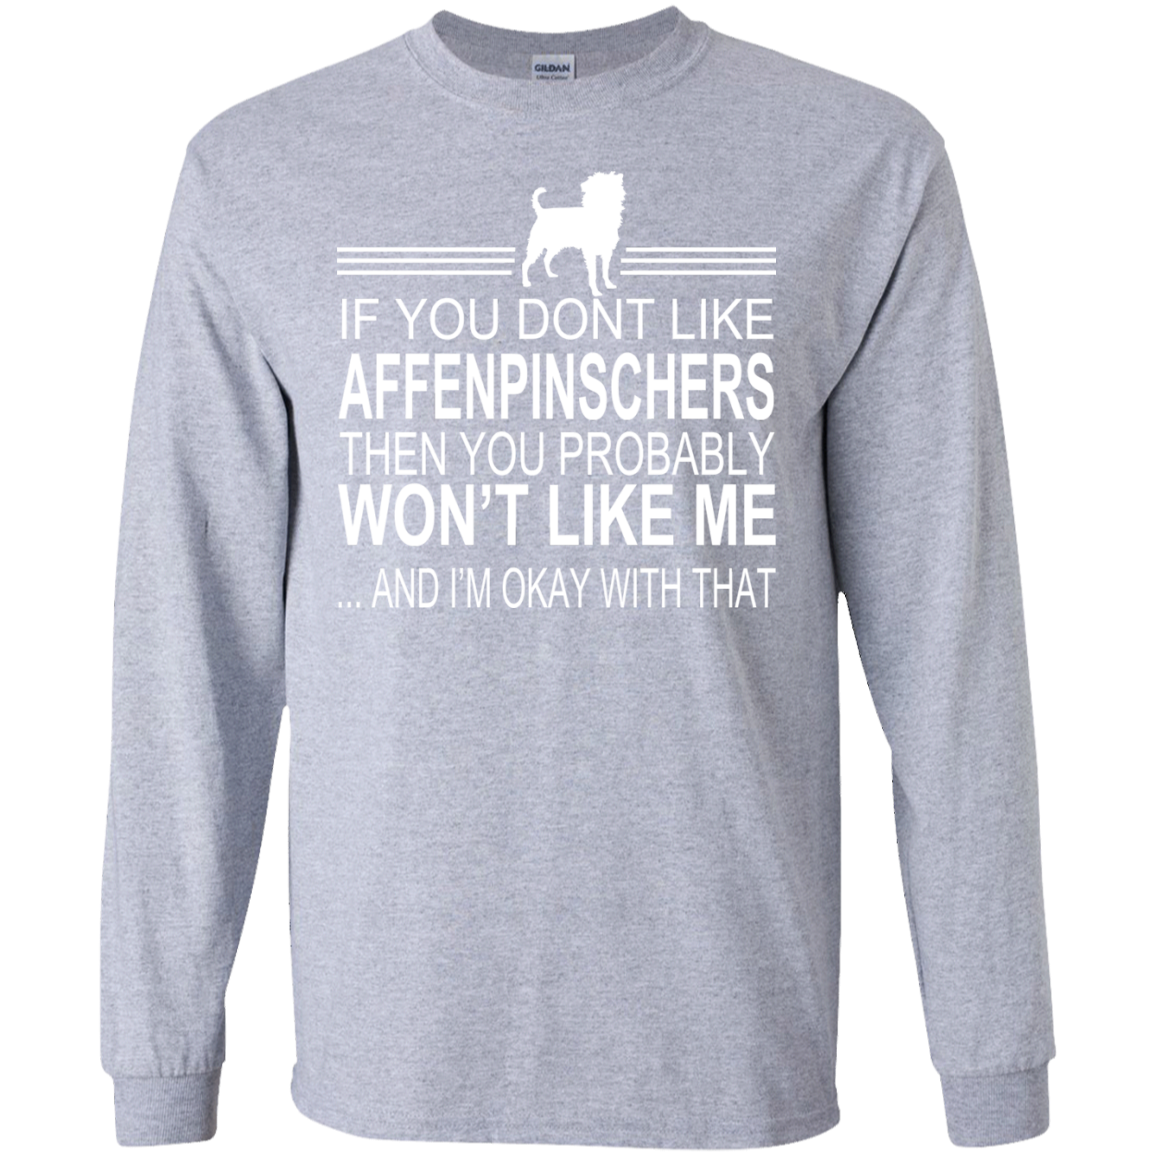 If You Dont Like Affenpinschers Then You Probably Wont Like Me And Im Okay With That Long Sleeve Tees